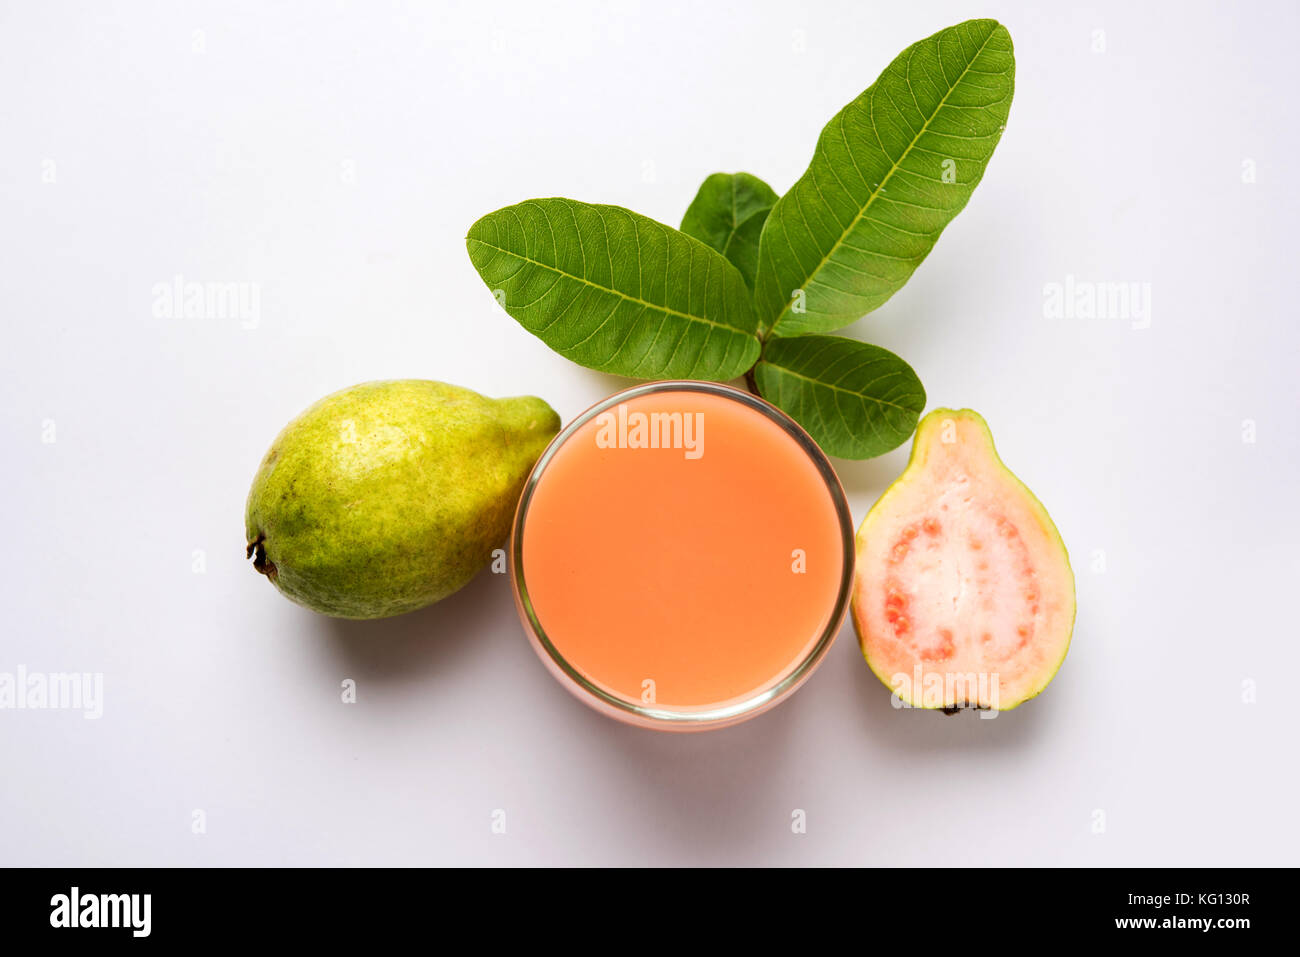 how to cut guava for smoothie